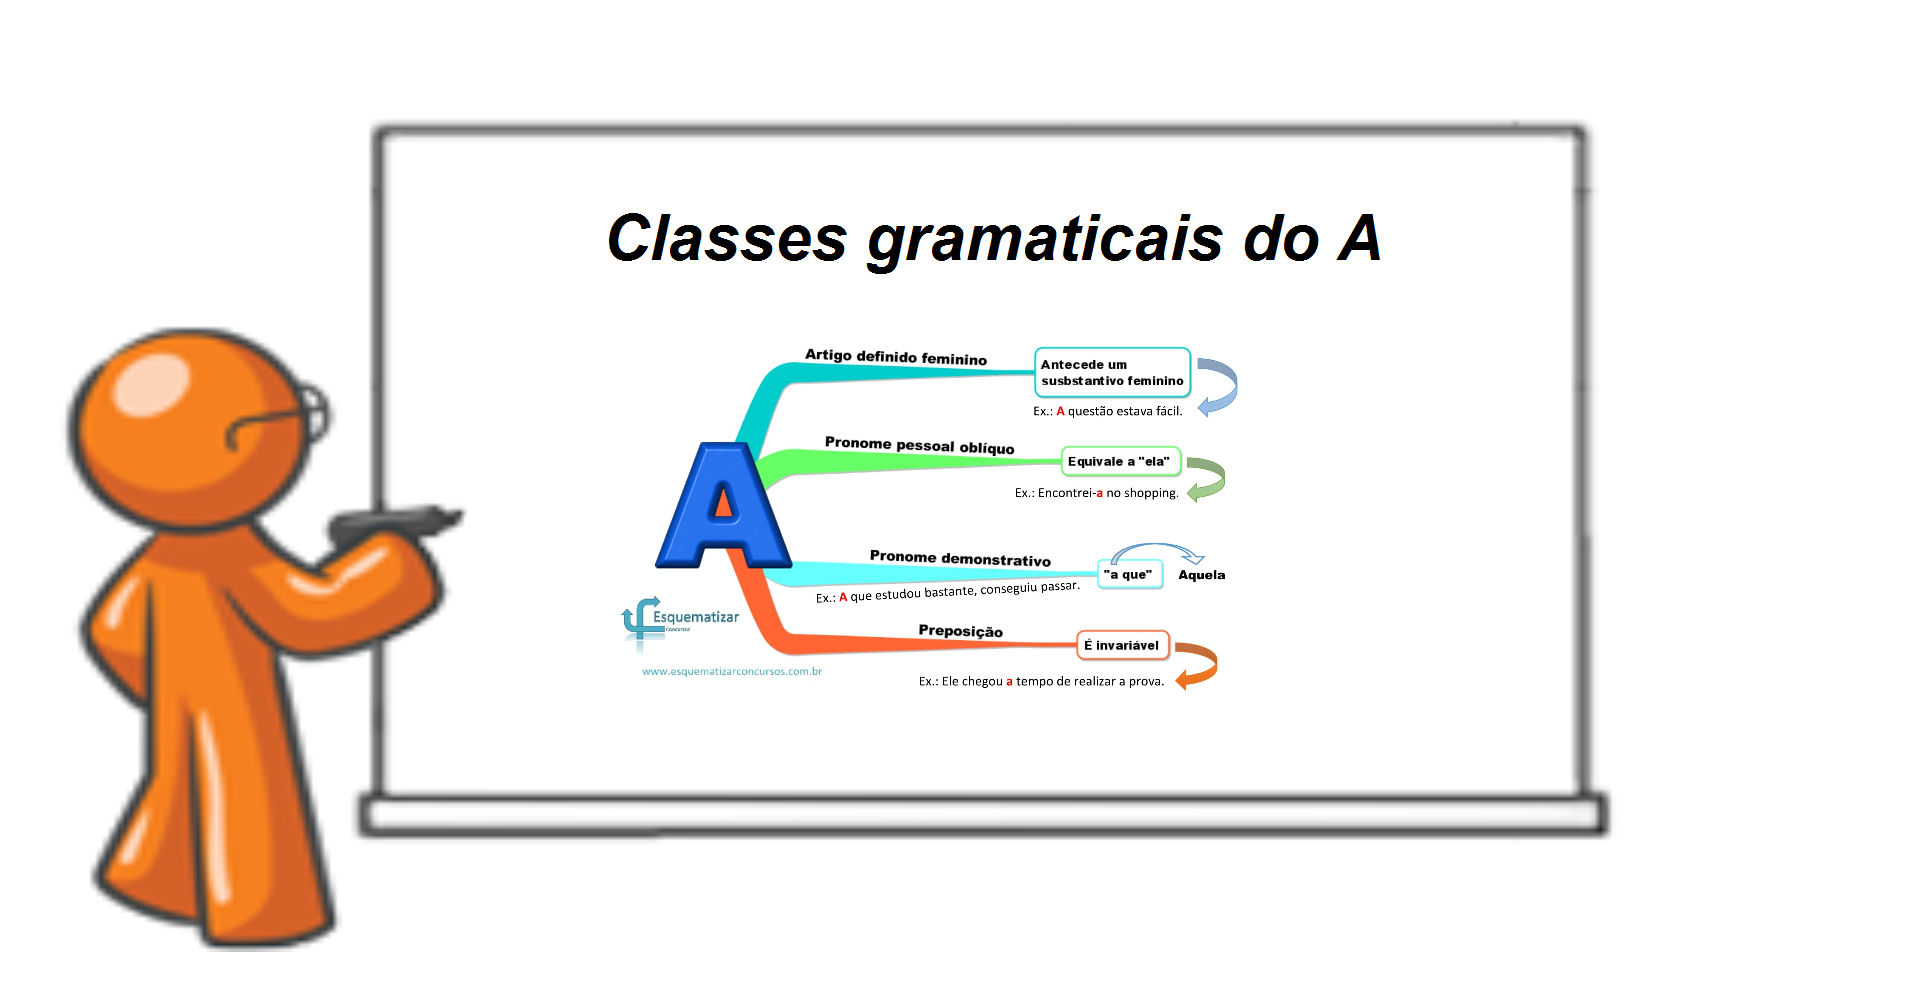 Classes gramaticais do